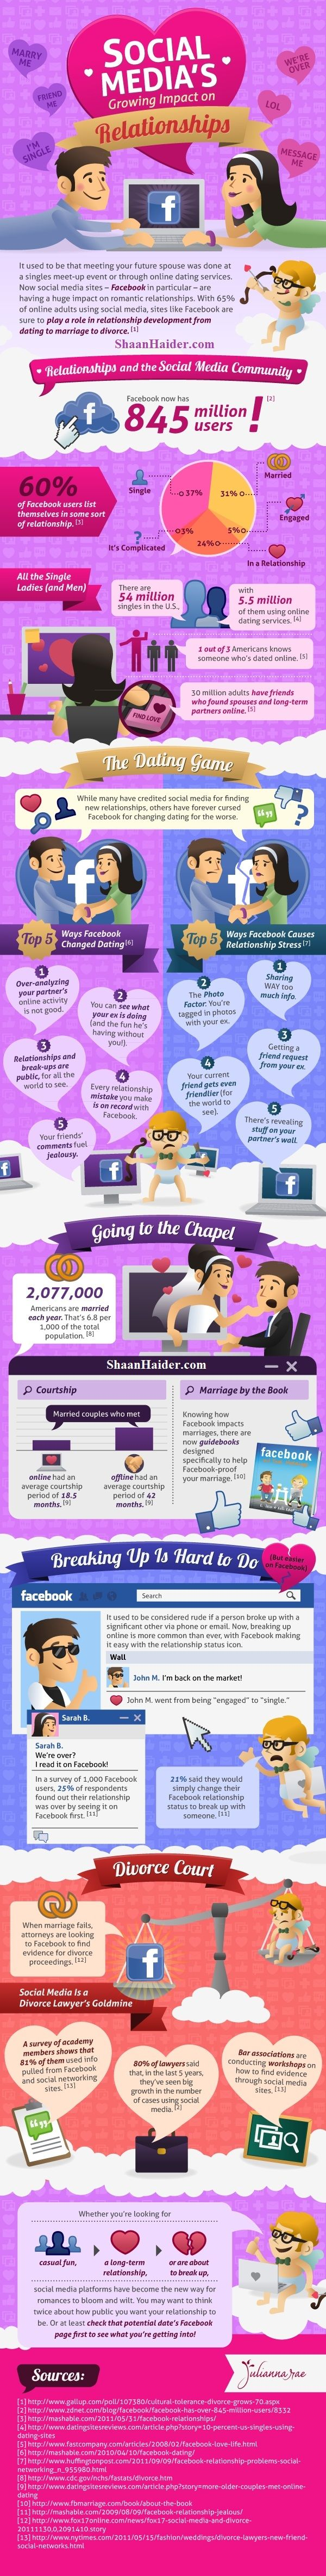 There are over 54 million single individuals in the United States. An estimated 5.5 million use online dating services, seeking a relationship with the right person. The onset of social media sites have changed the dating scene and stress of how relationships survive. Online courtship is becoming more common and resulting in a growing rate